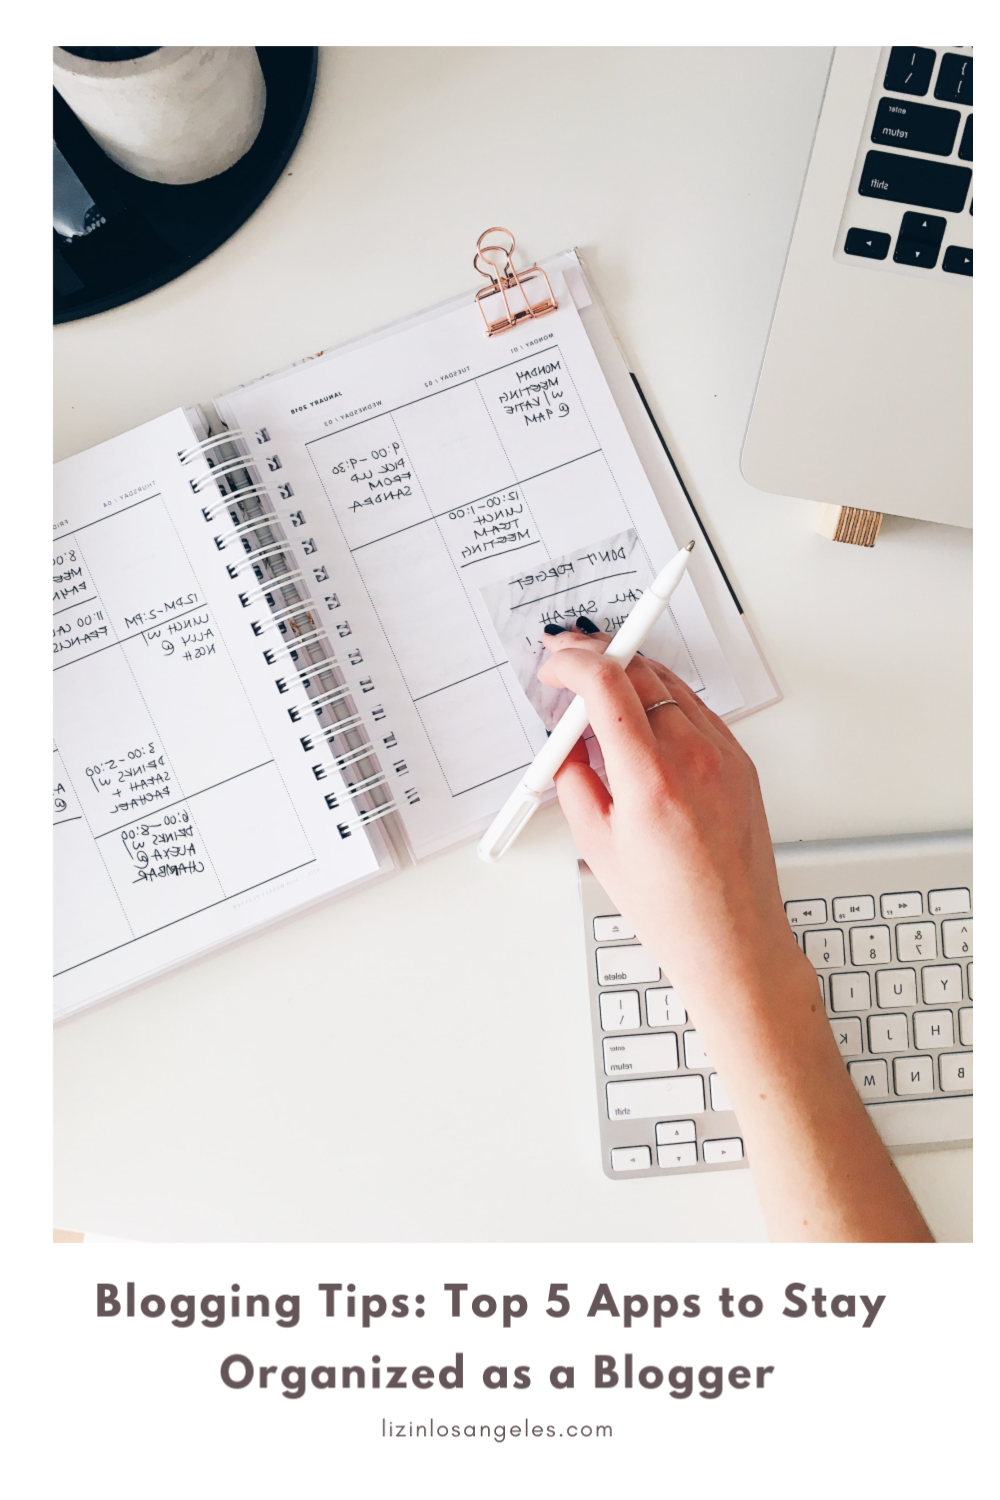 Top 5 Apps to Stay Organized as a Blogger, a blog post by Liz in Los Angeles, Los Angeles Lifedstyle Blogger, an image of desk organizers